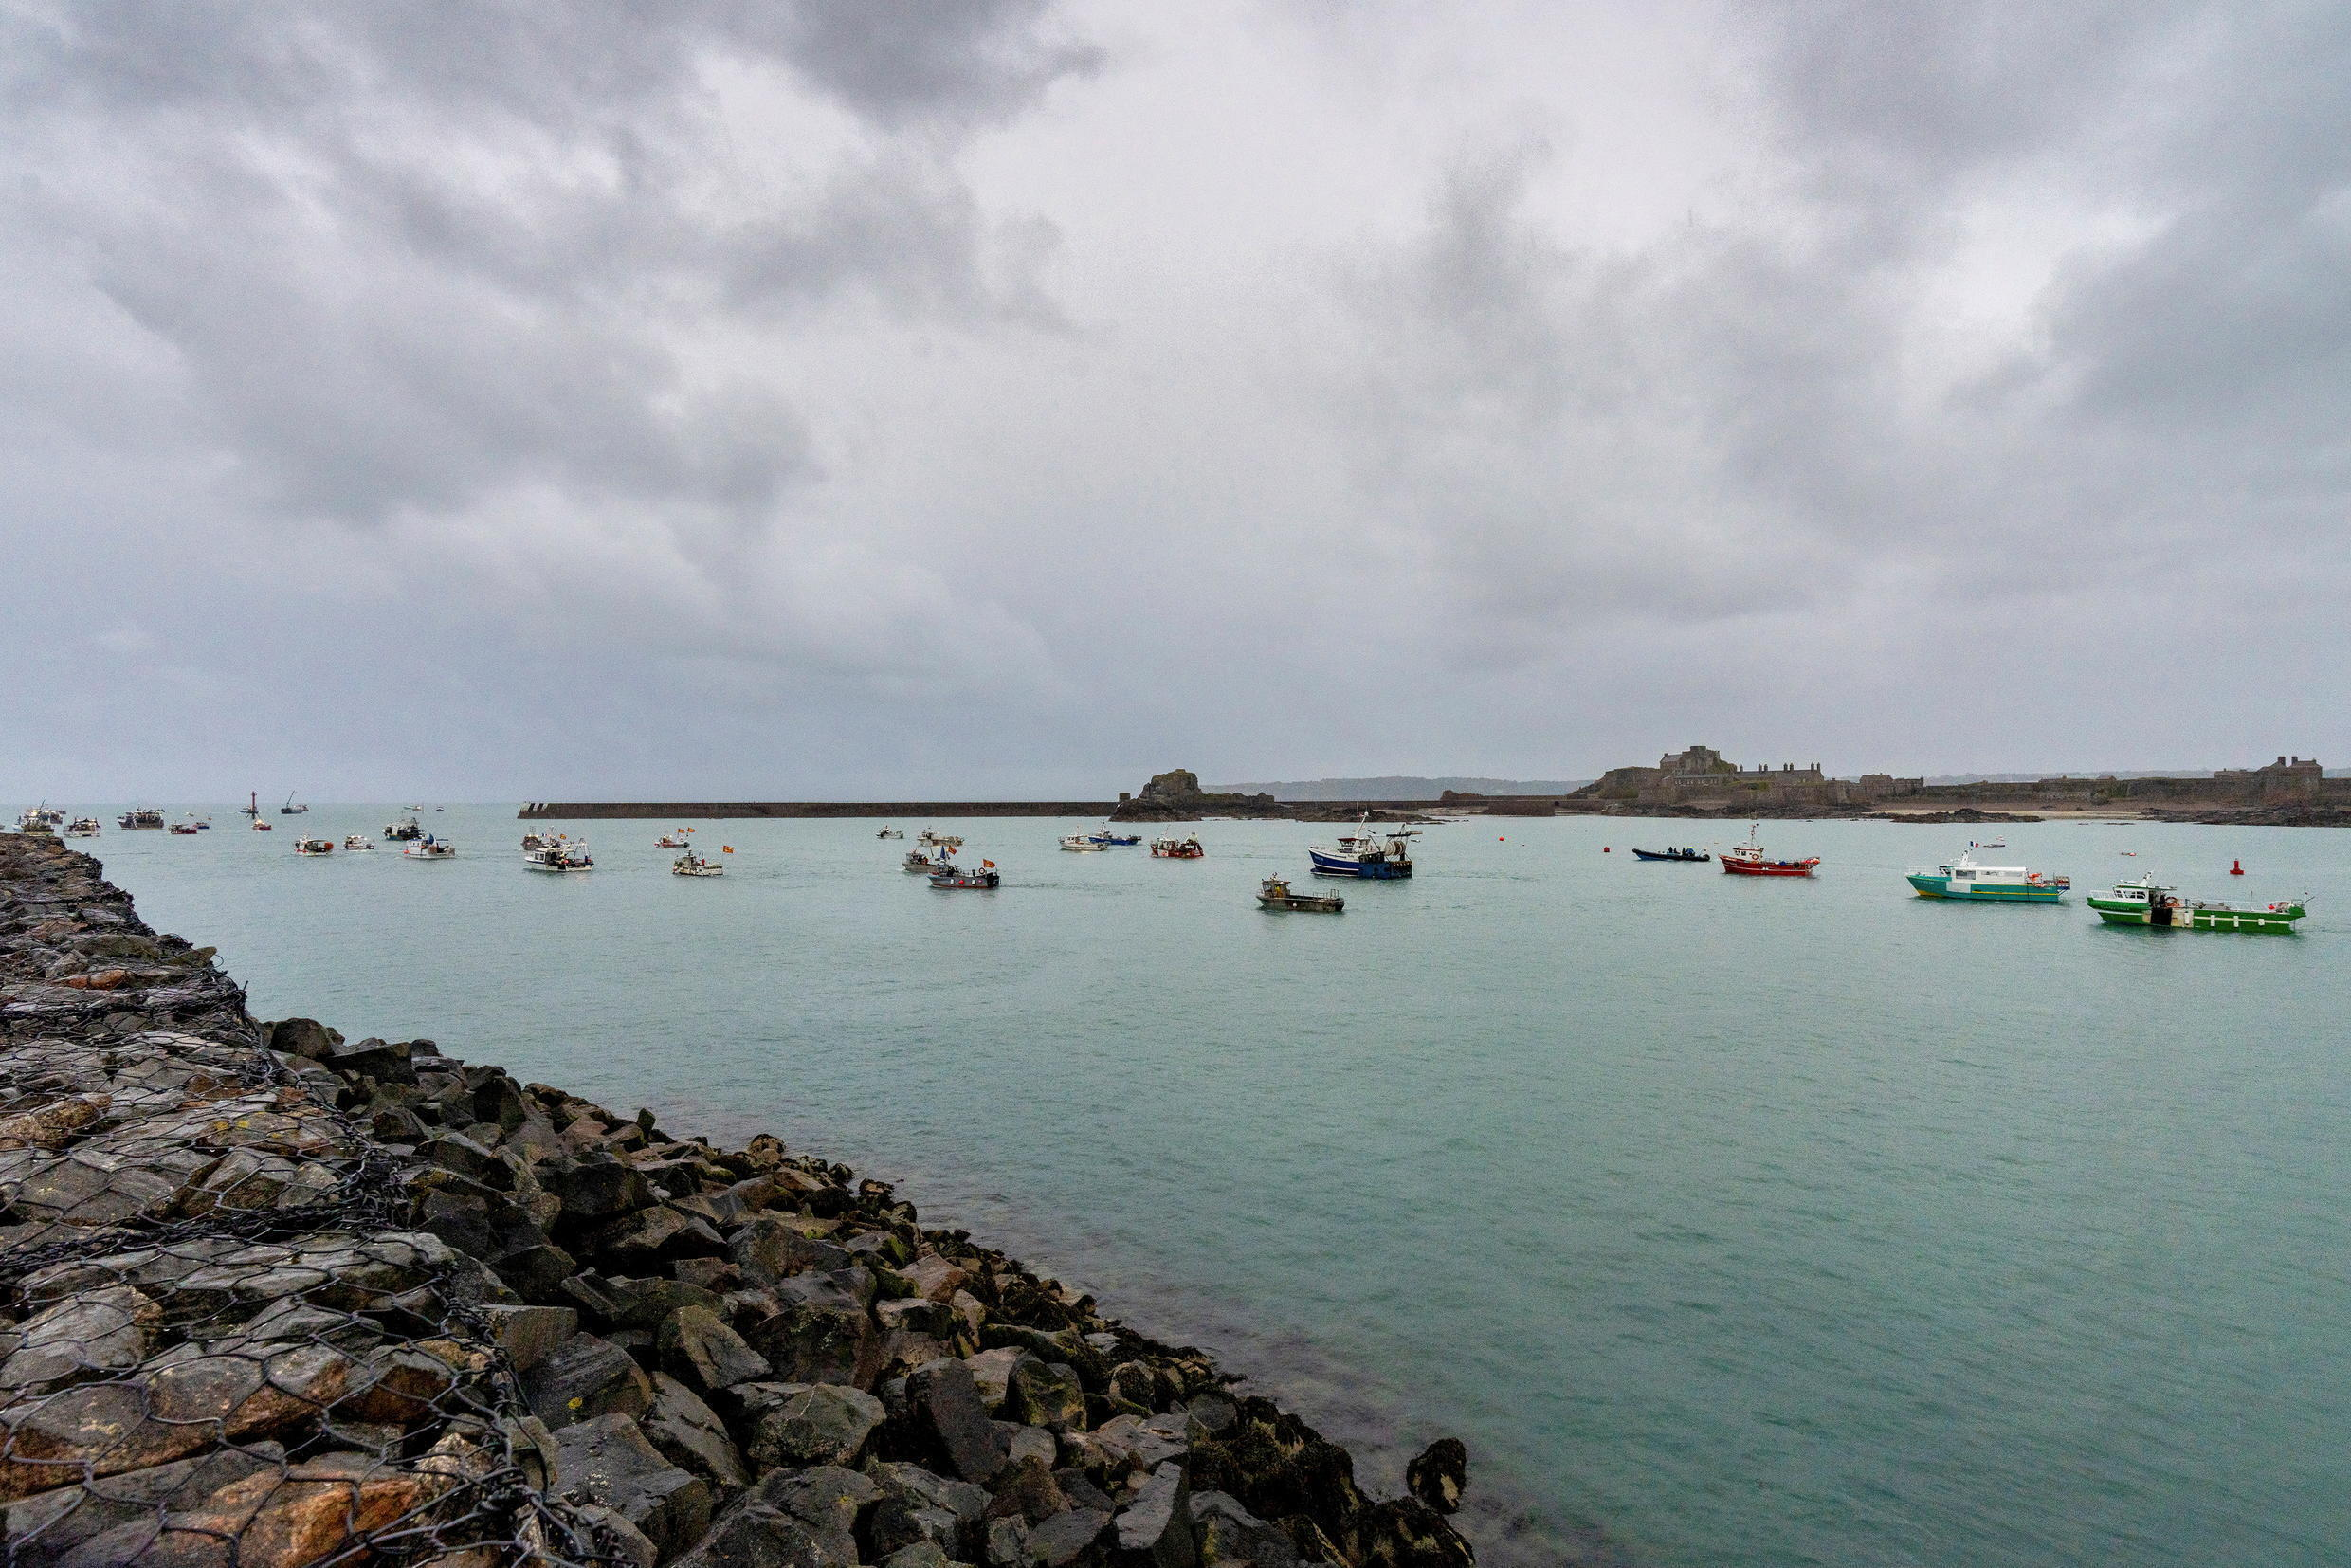 French fishing fleet is seen at the entrance to the harbour in St Helier Jersey